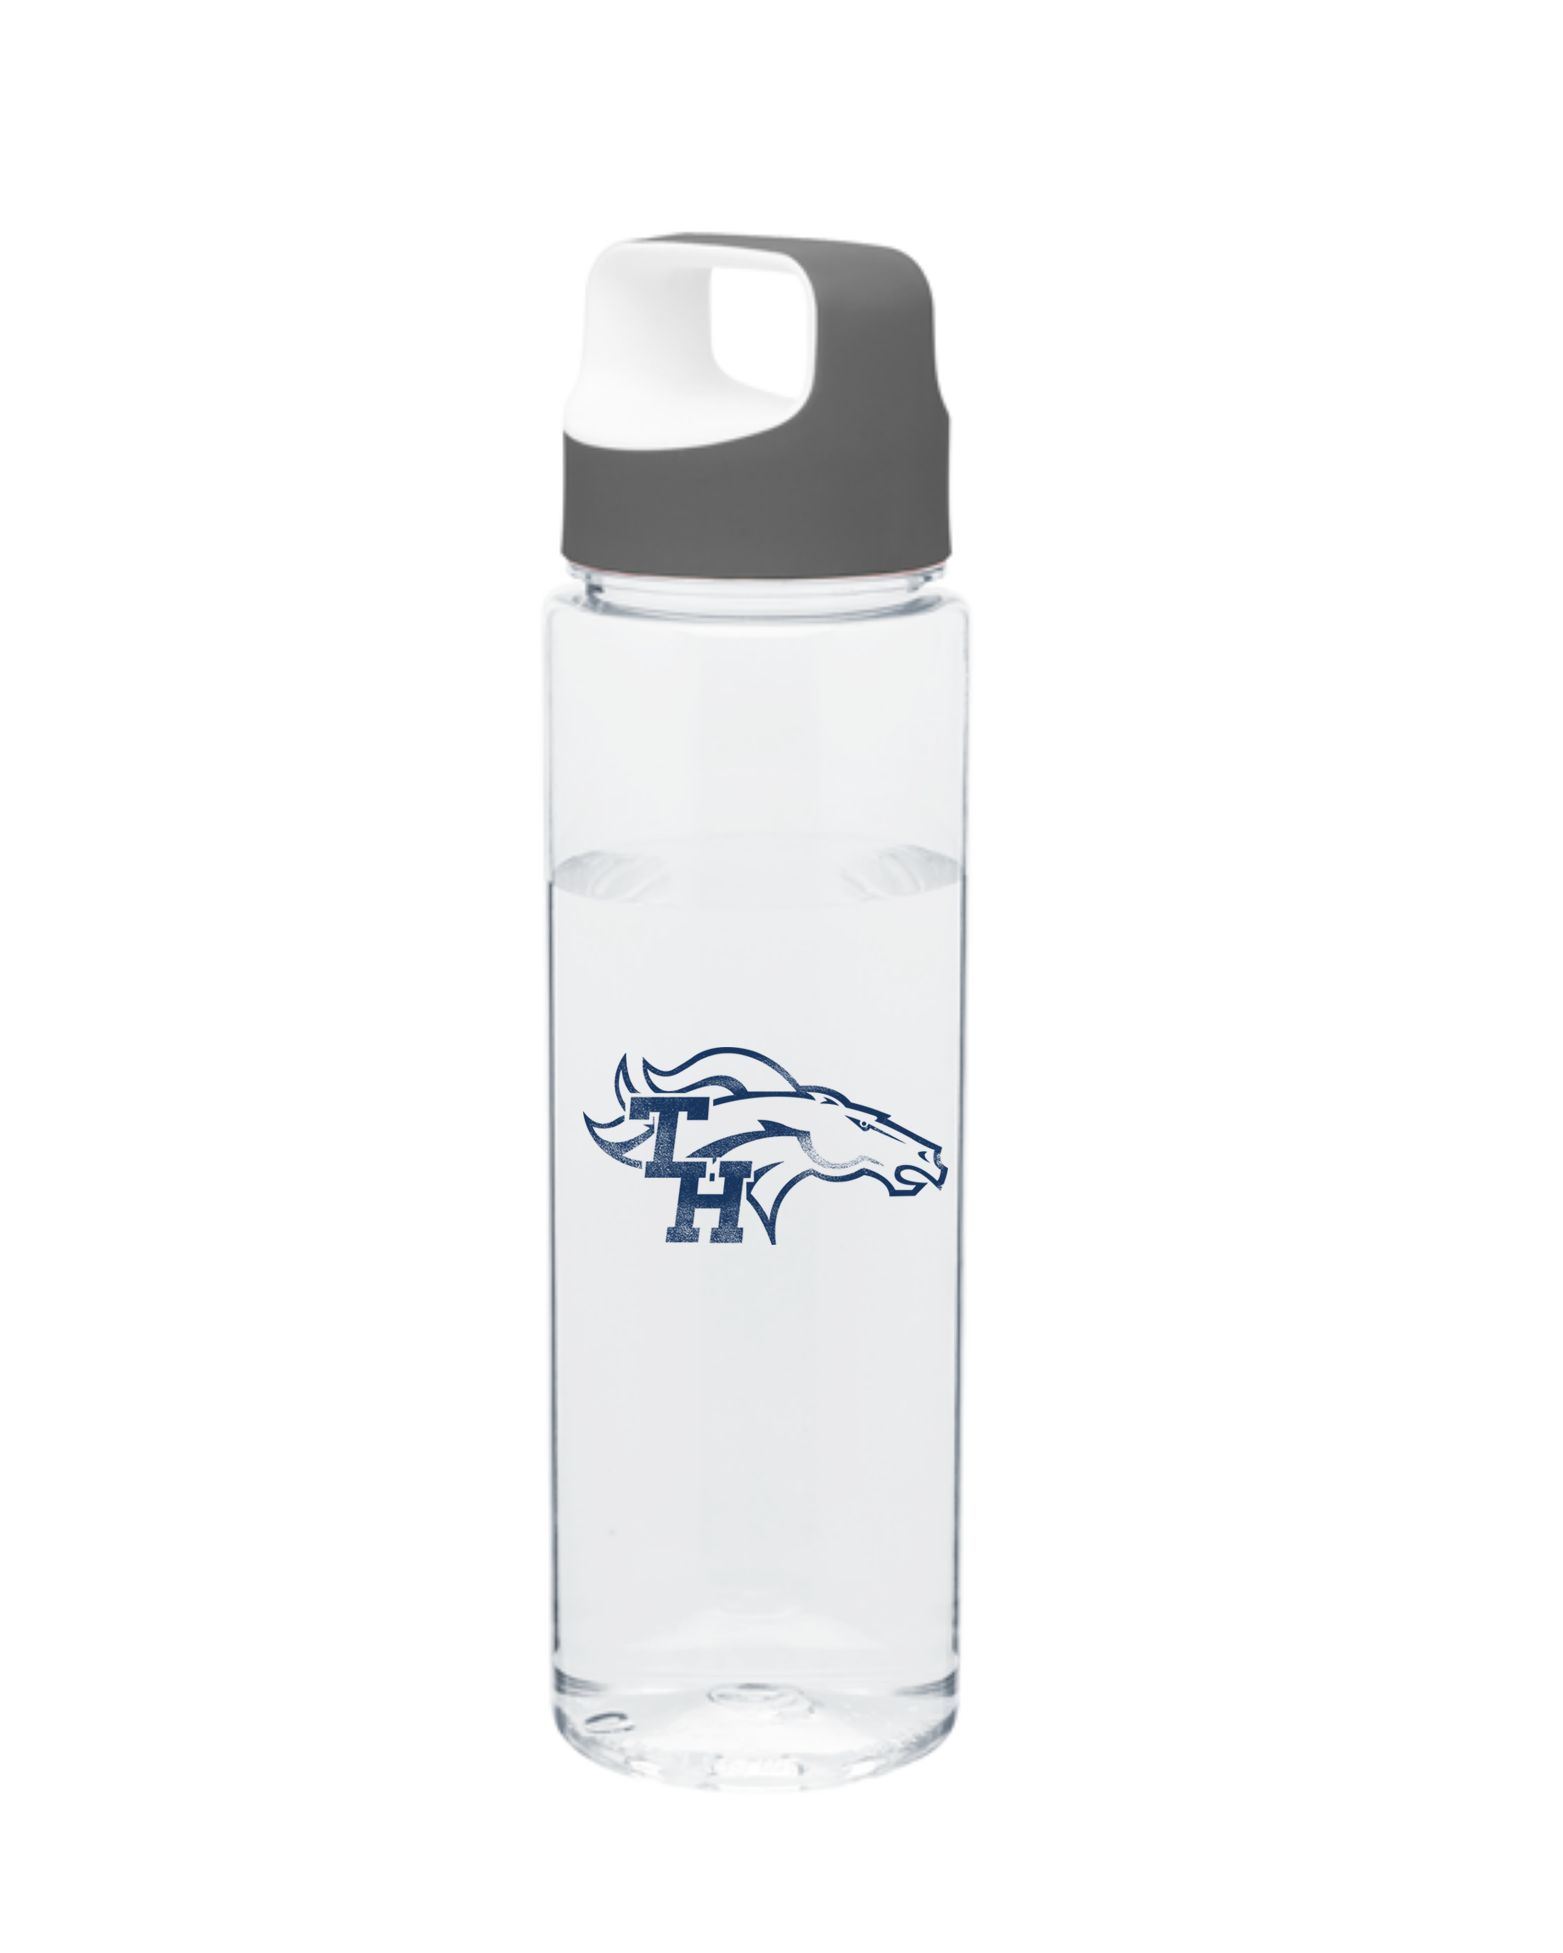 00f8f22274 TRABUCO-HILLS-PORTAL-WATER-BOTTLE-2-DISTRESS - Merchwide Inc ...